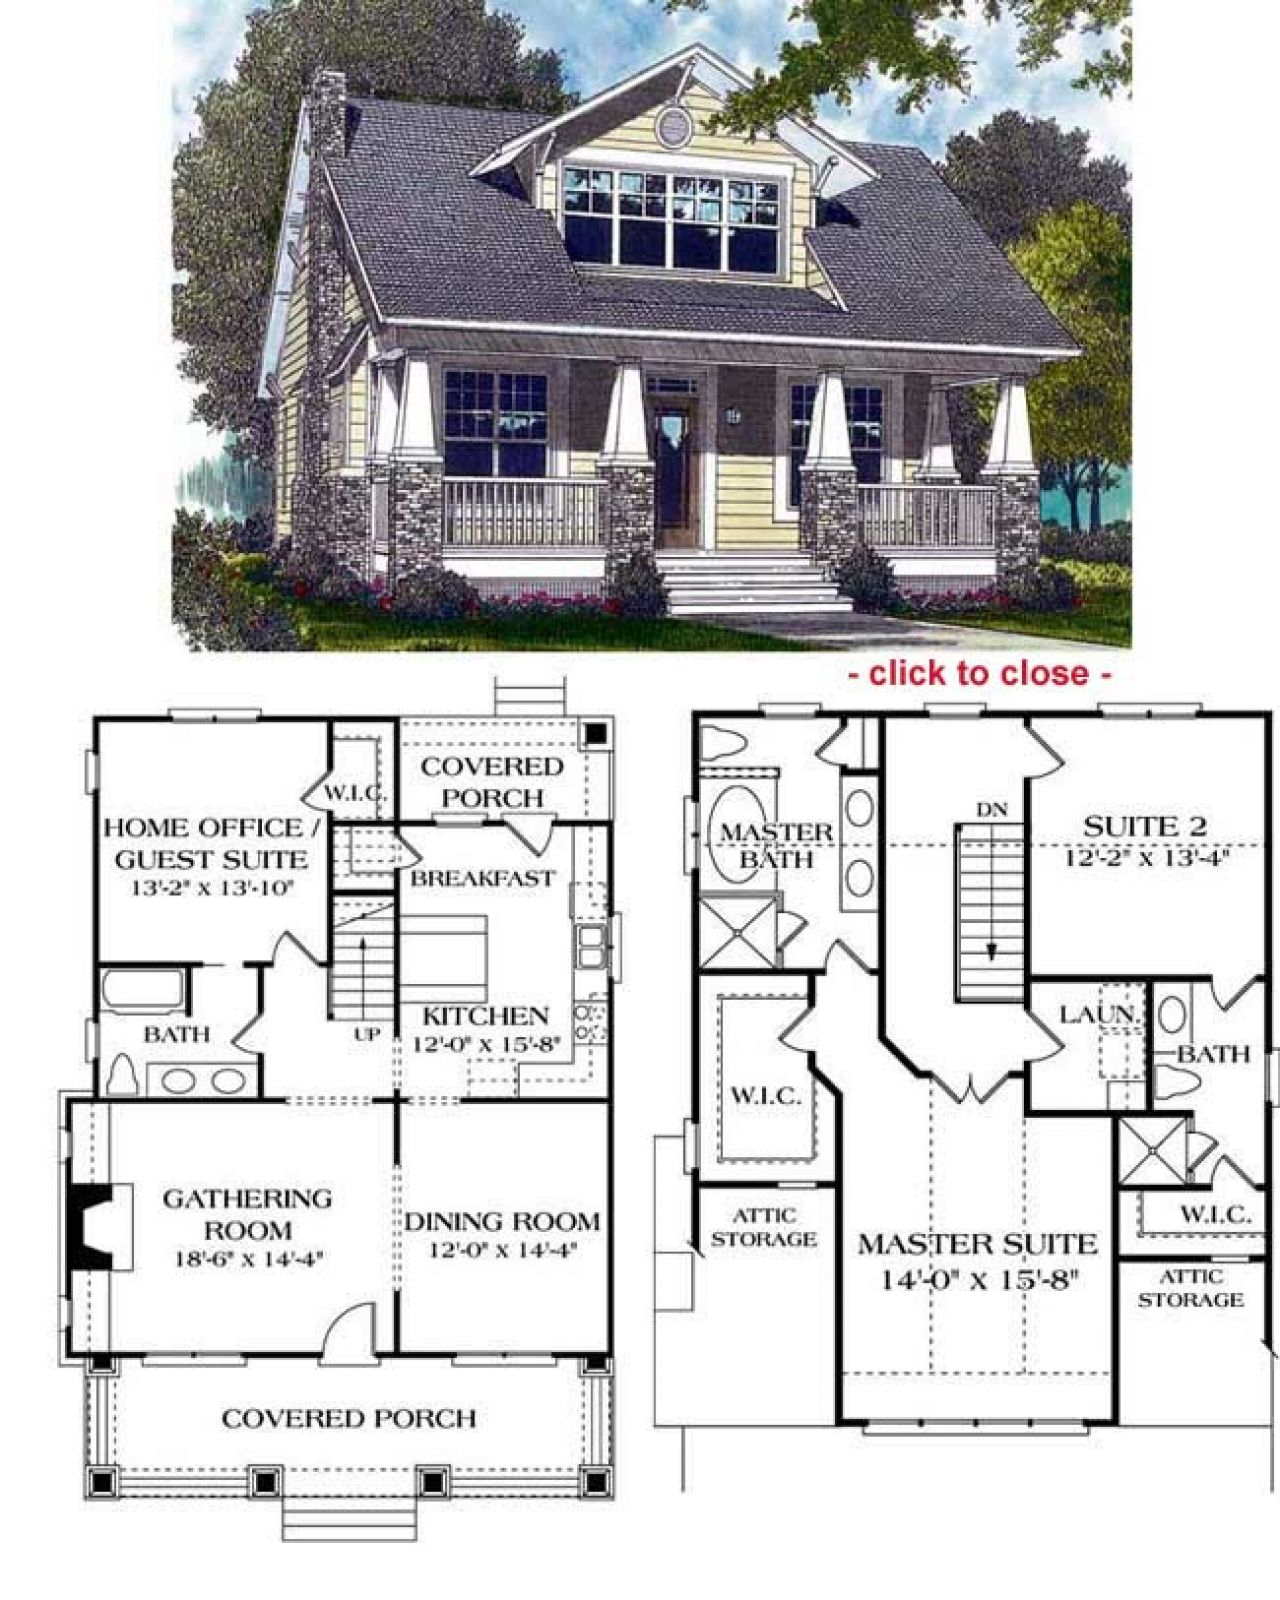 Bungalow house styles craftsman house plans and for Craftman house plans